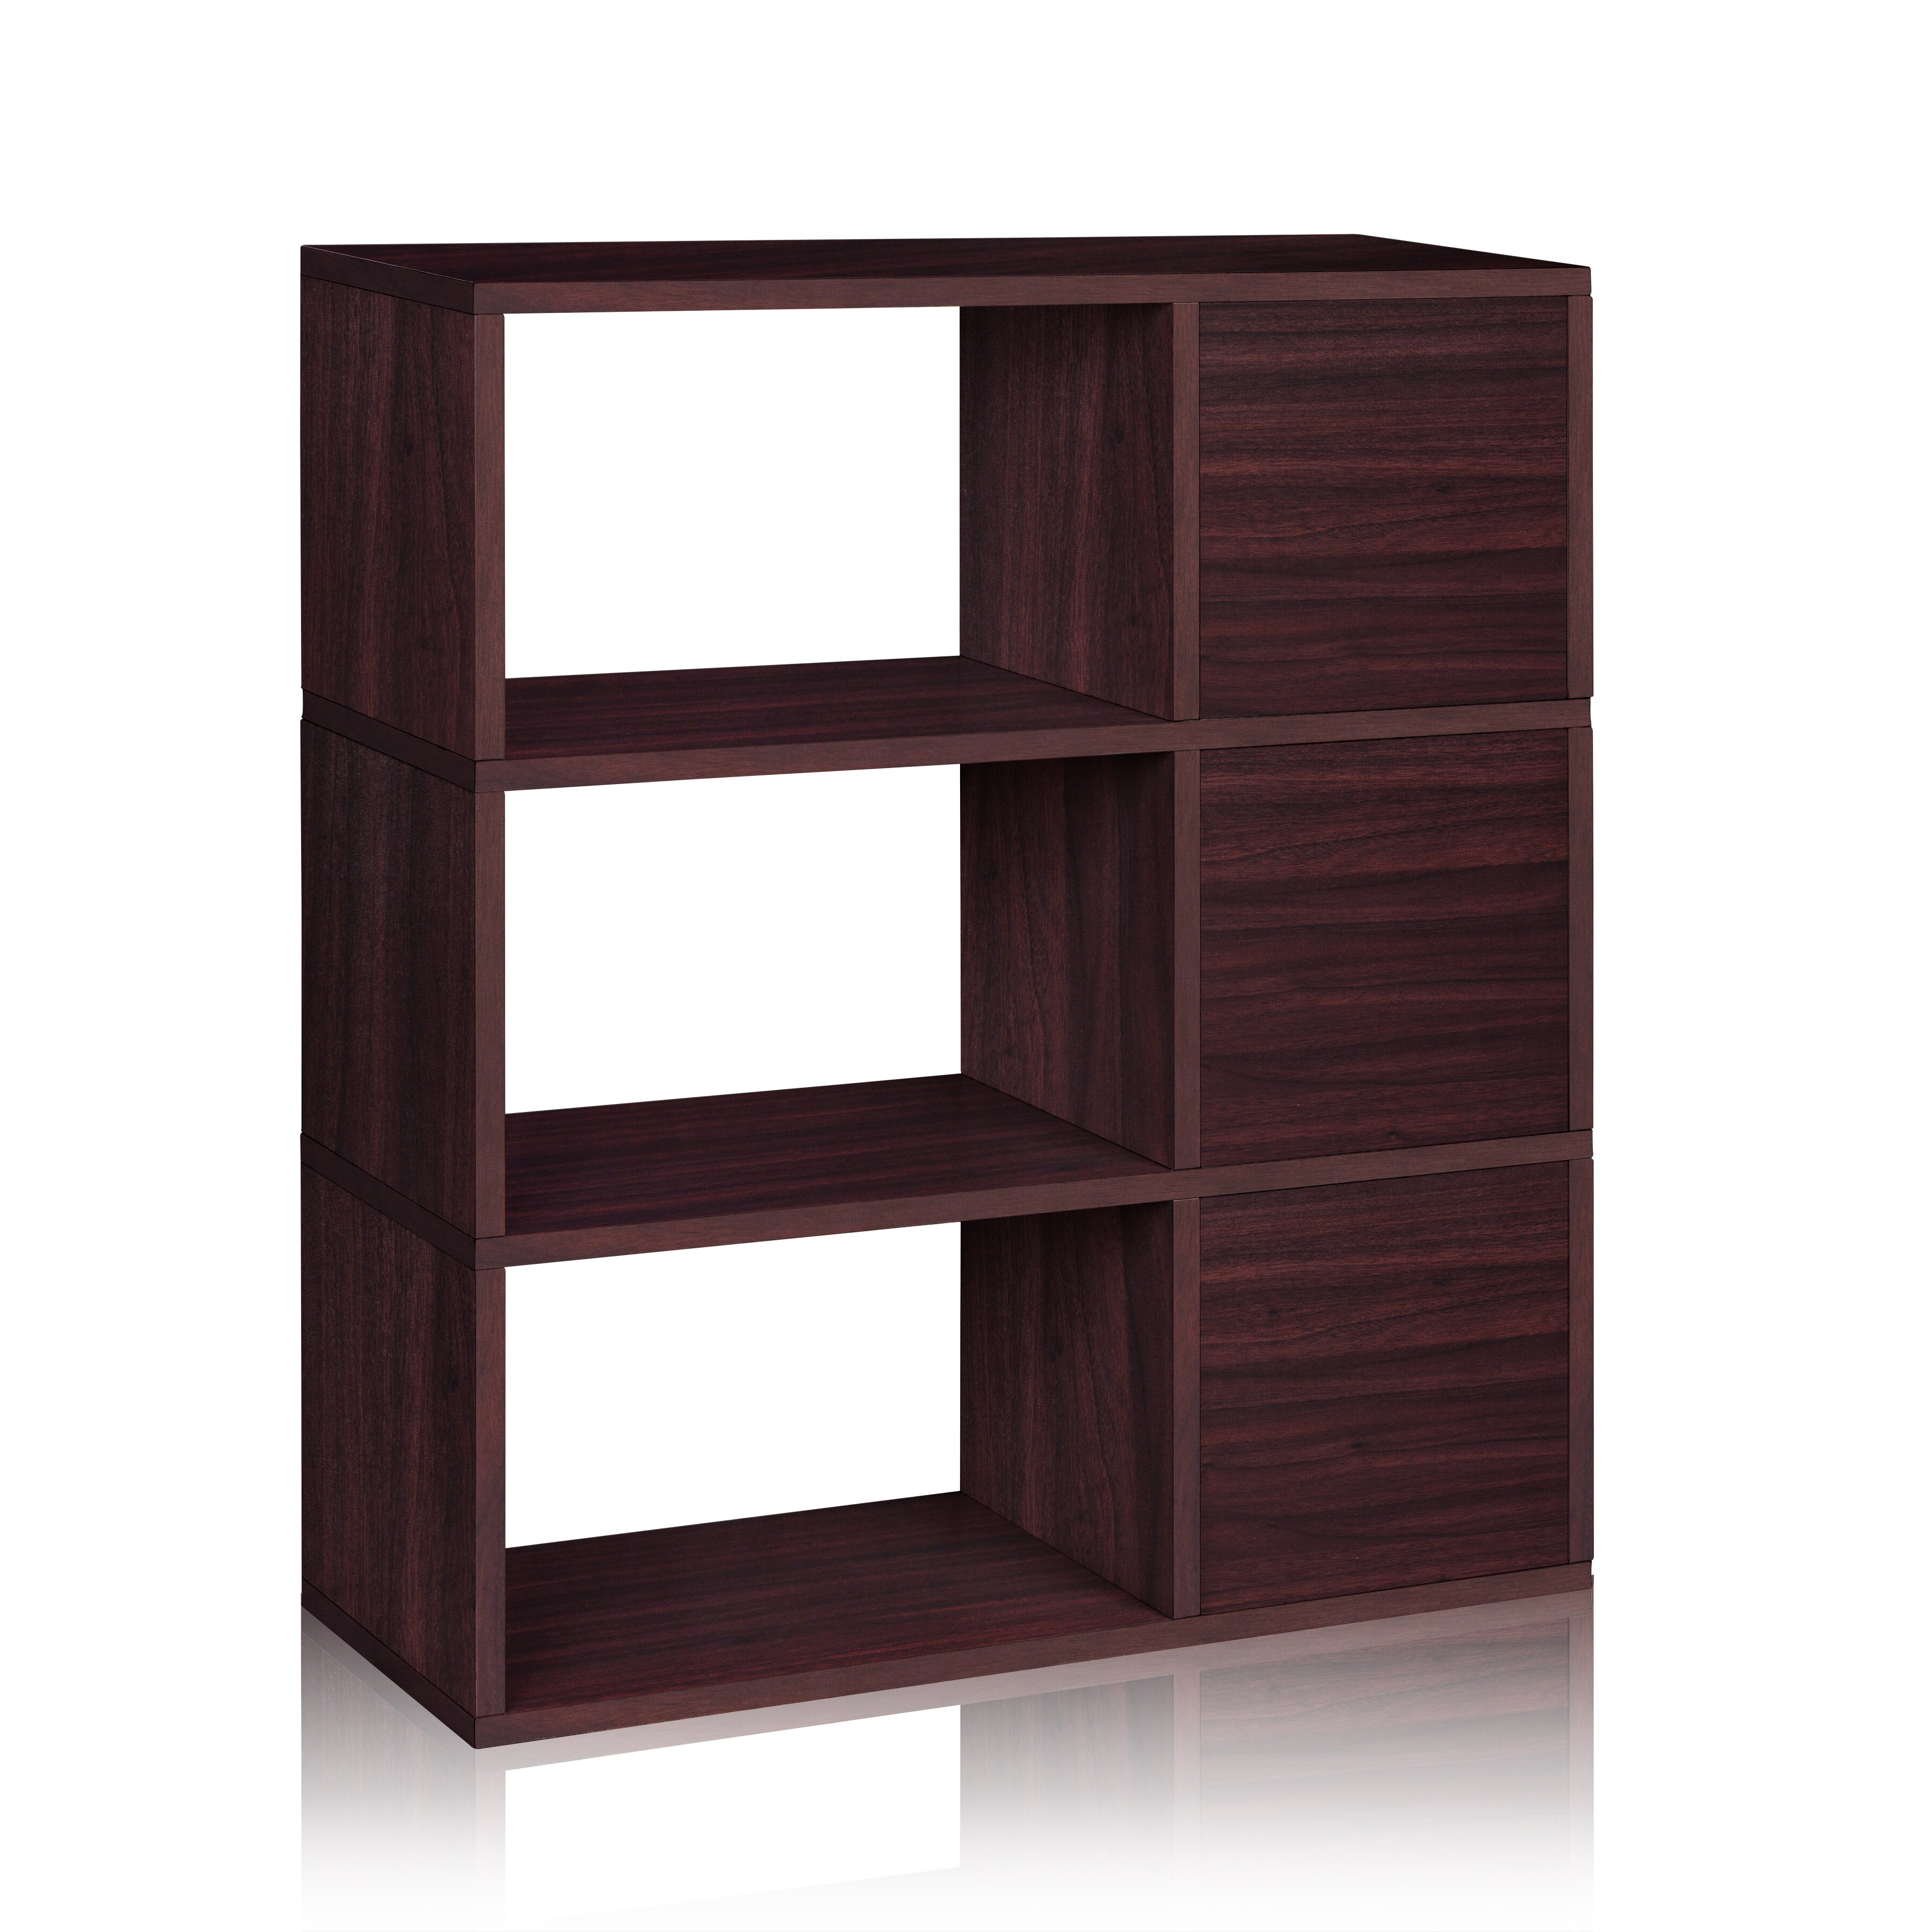 Wonderful image of  zBoard Storage Sutton 37 Cube Unit Bookcase & Reviews Wayfair.ca with #341F22 color and 3600x3600 pixels